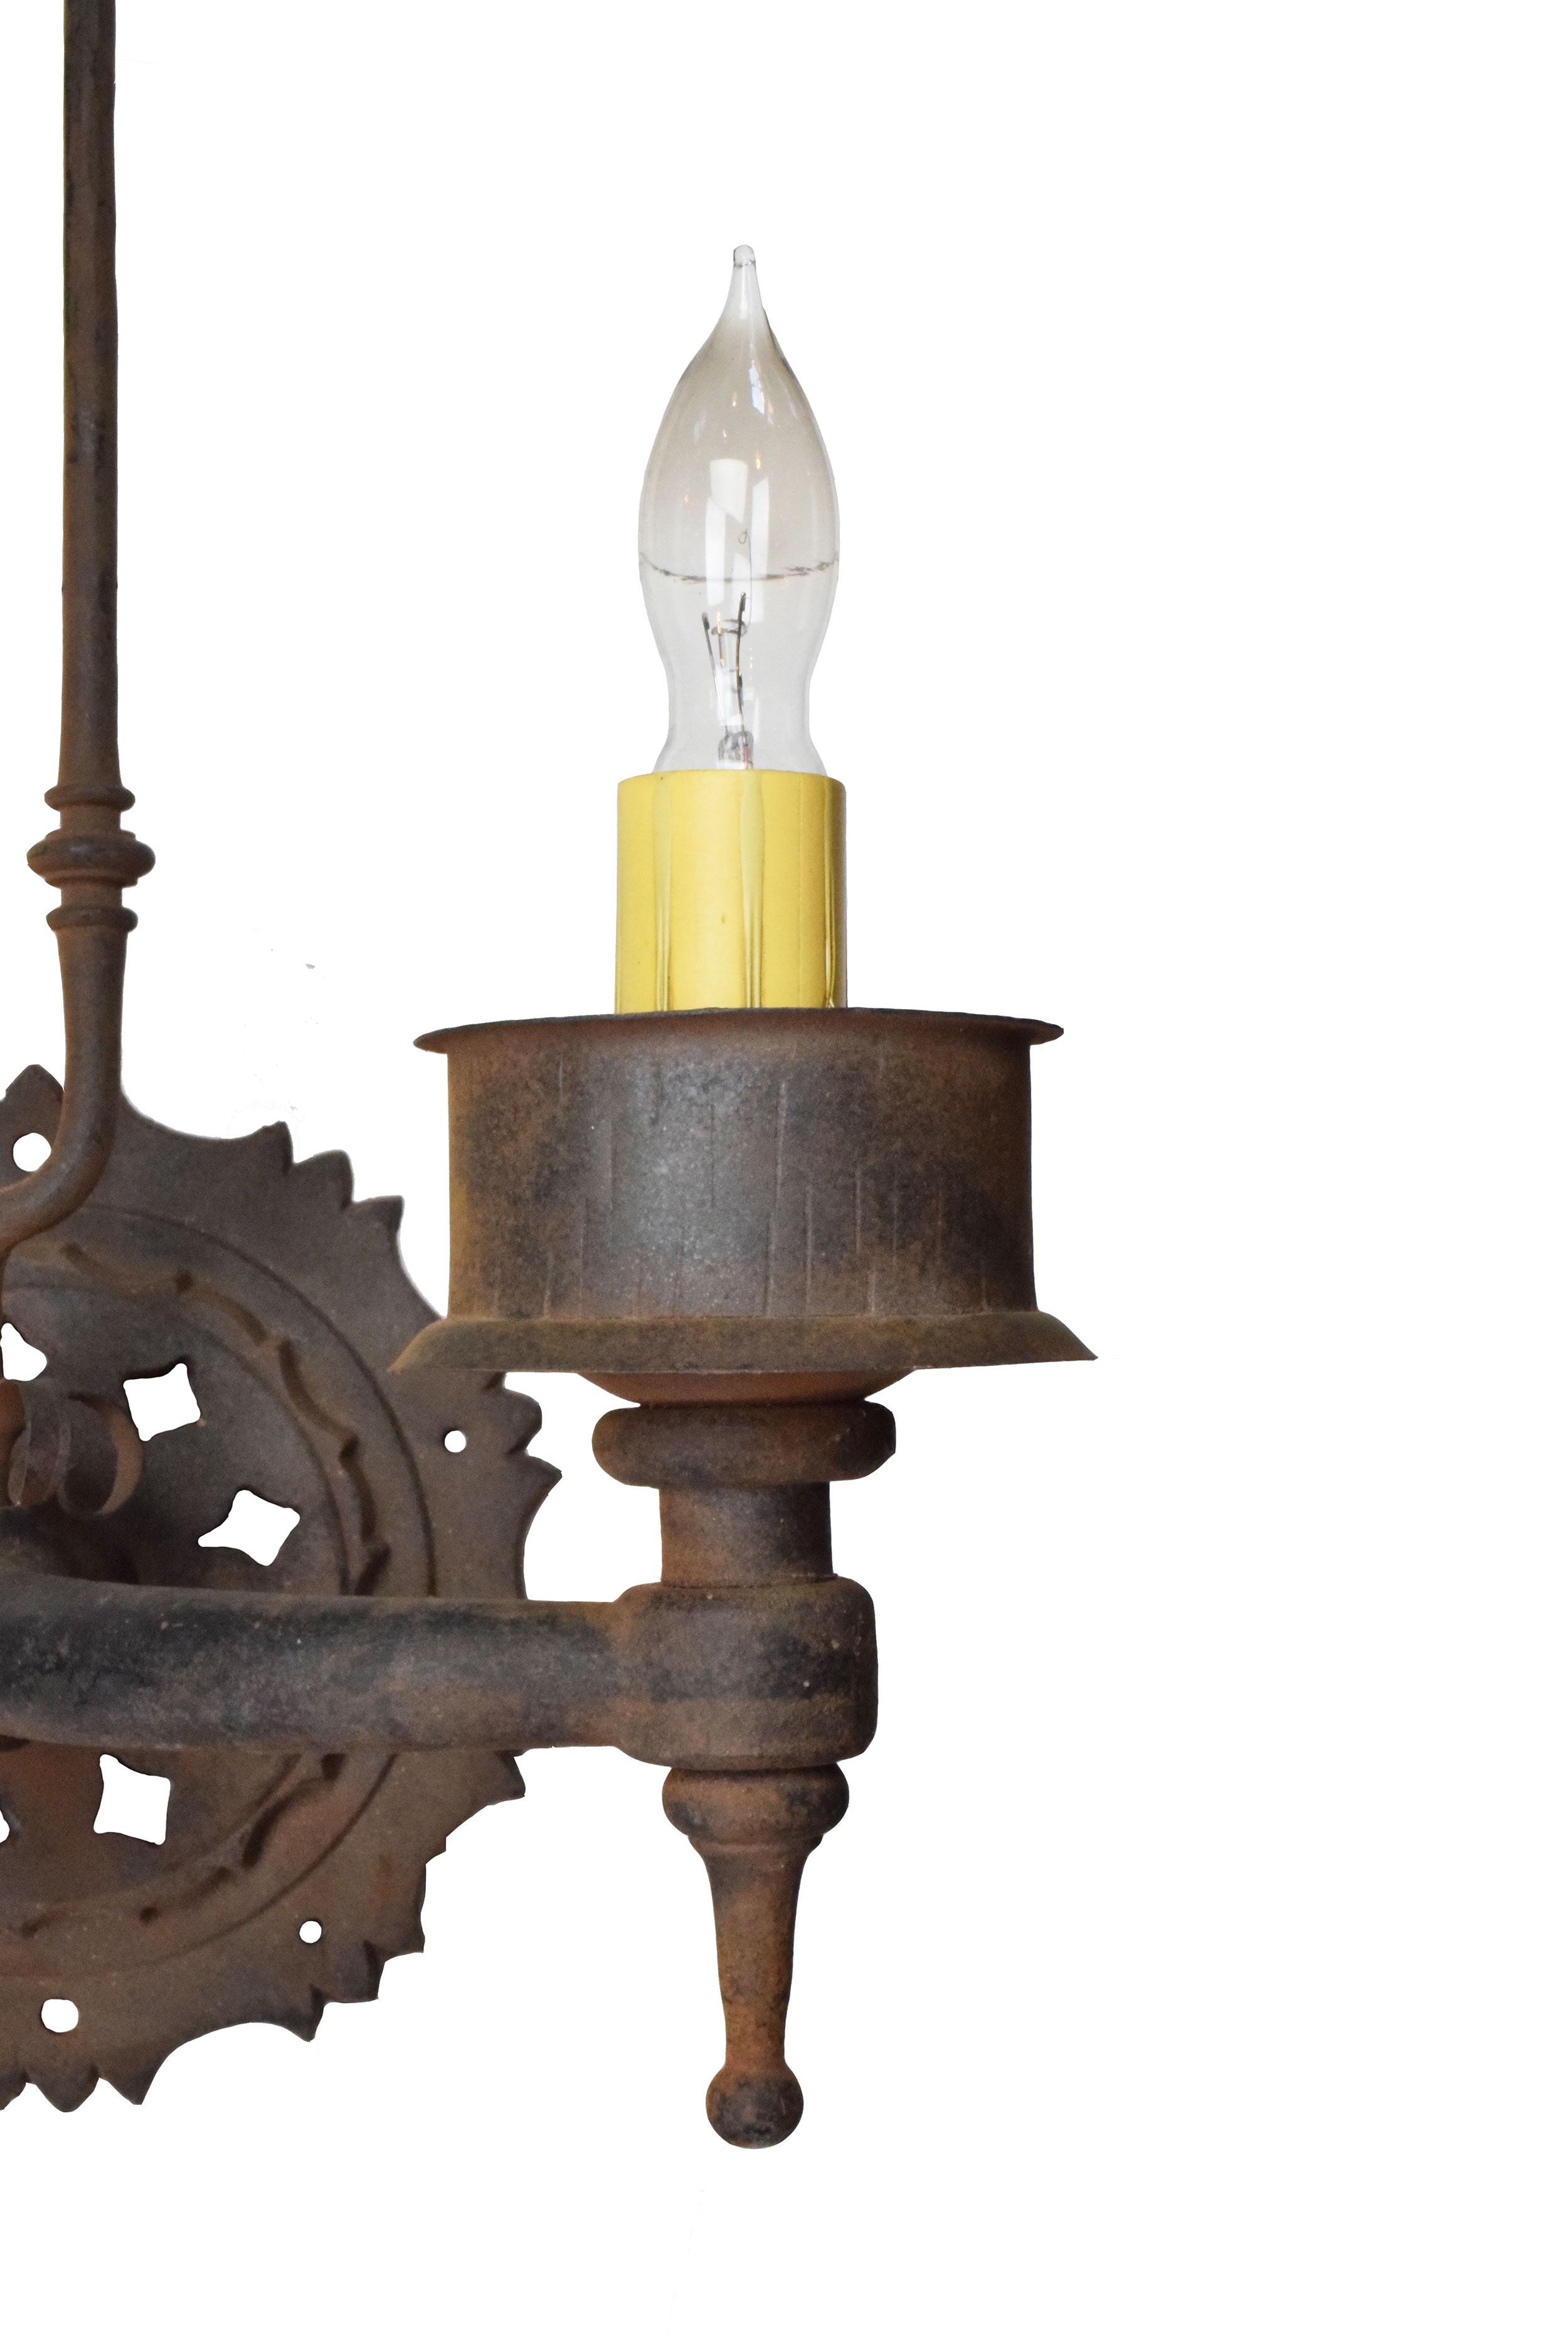 46997-iron-2-candle-sconce-with-prongs-light.jpg